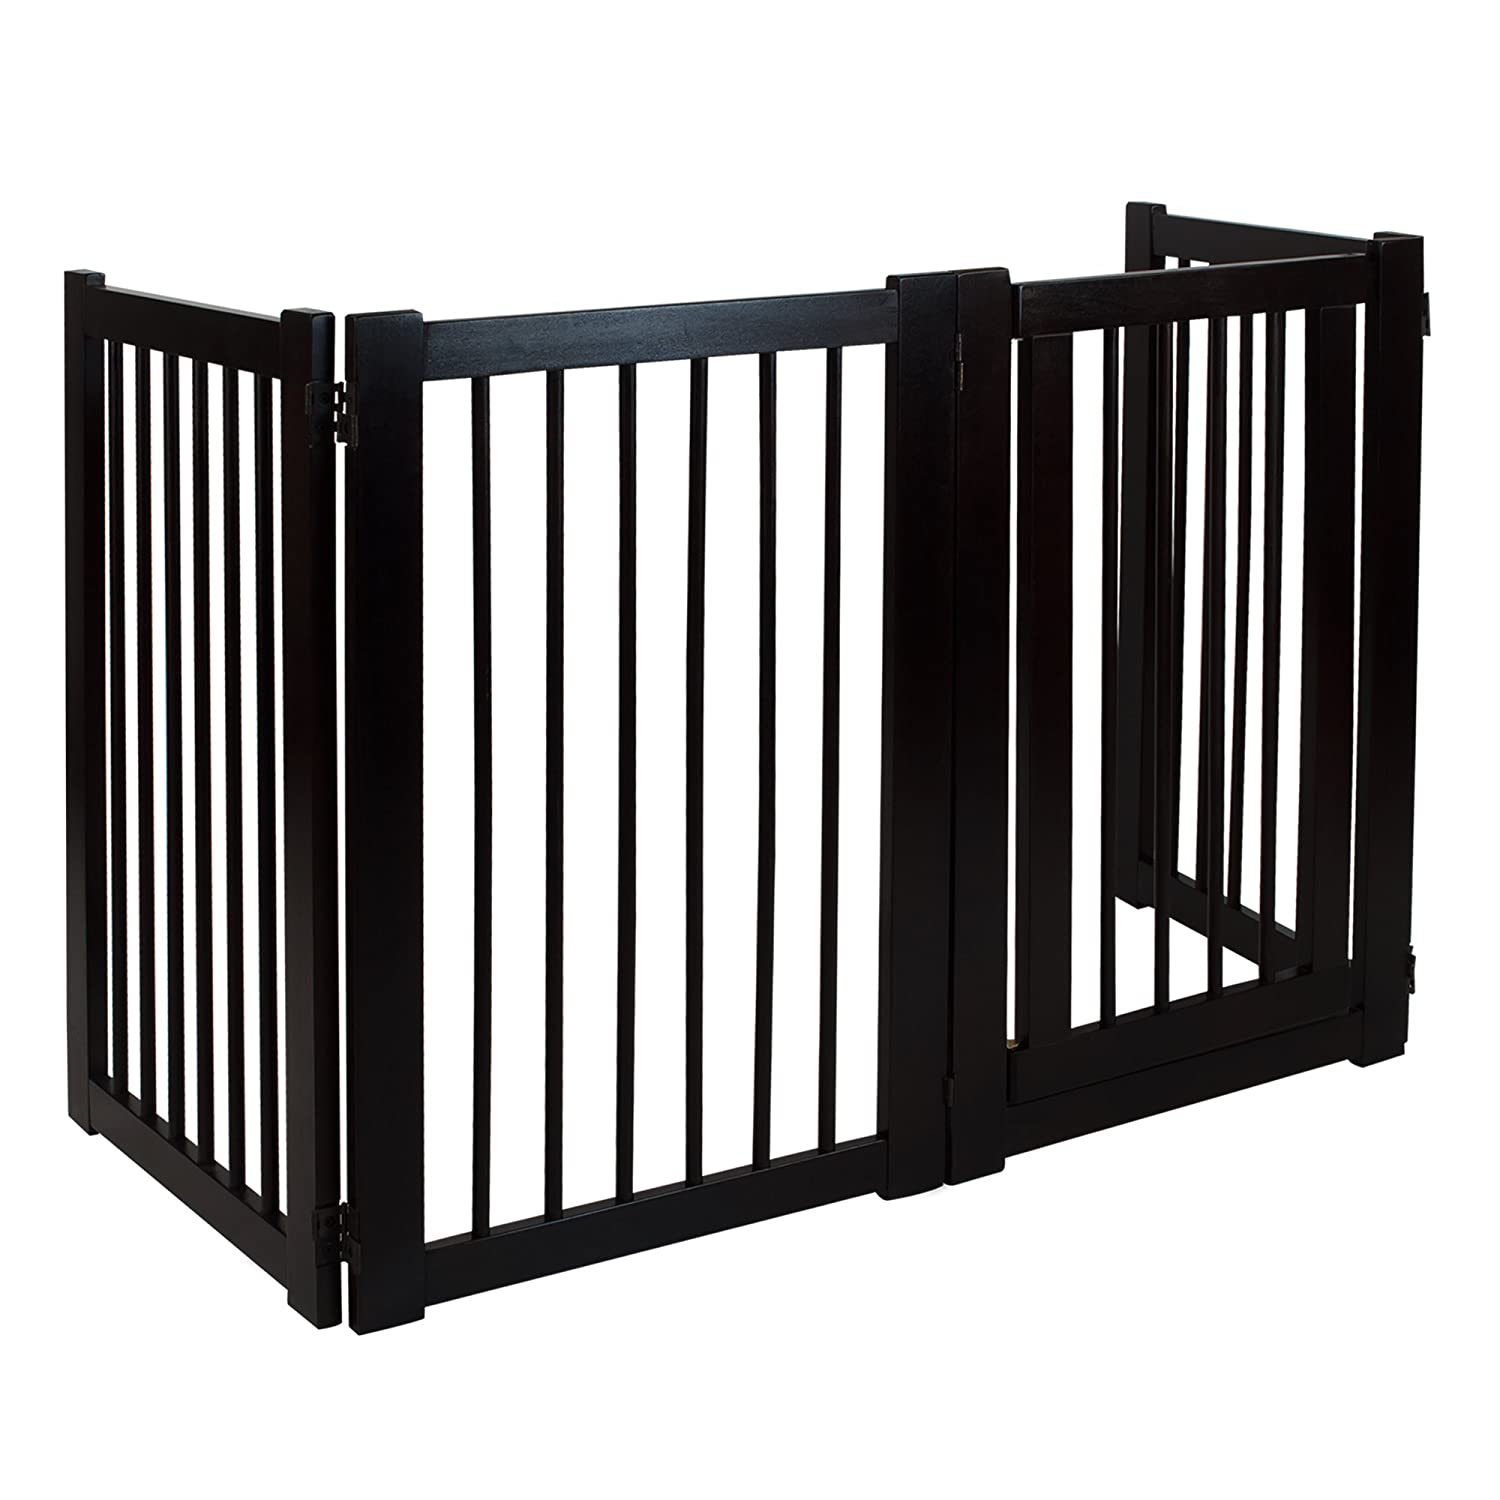 Amazon.com: American Trails Freestanding Pet Gate with Door: Pet ...